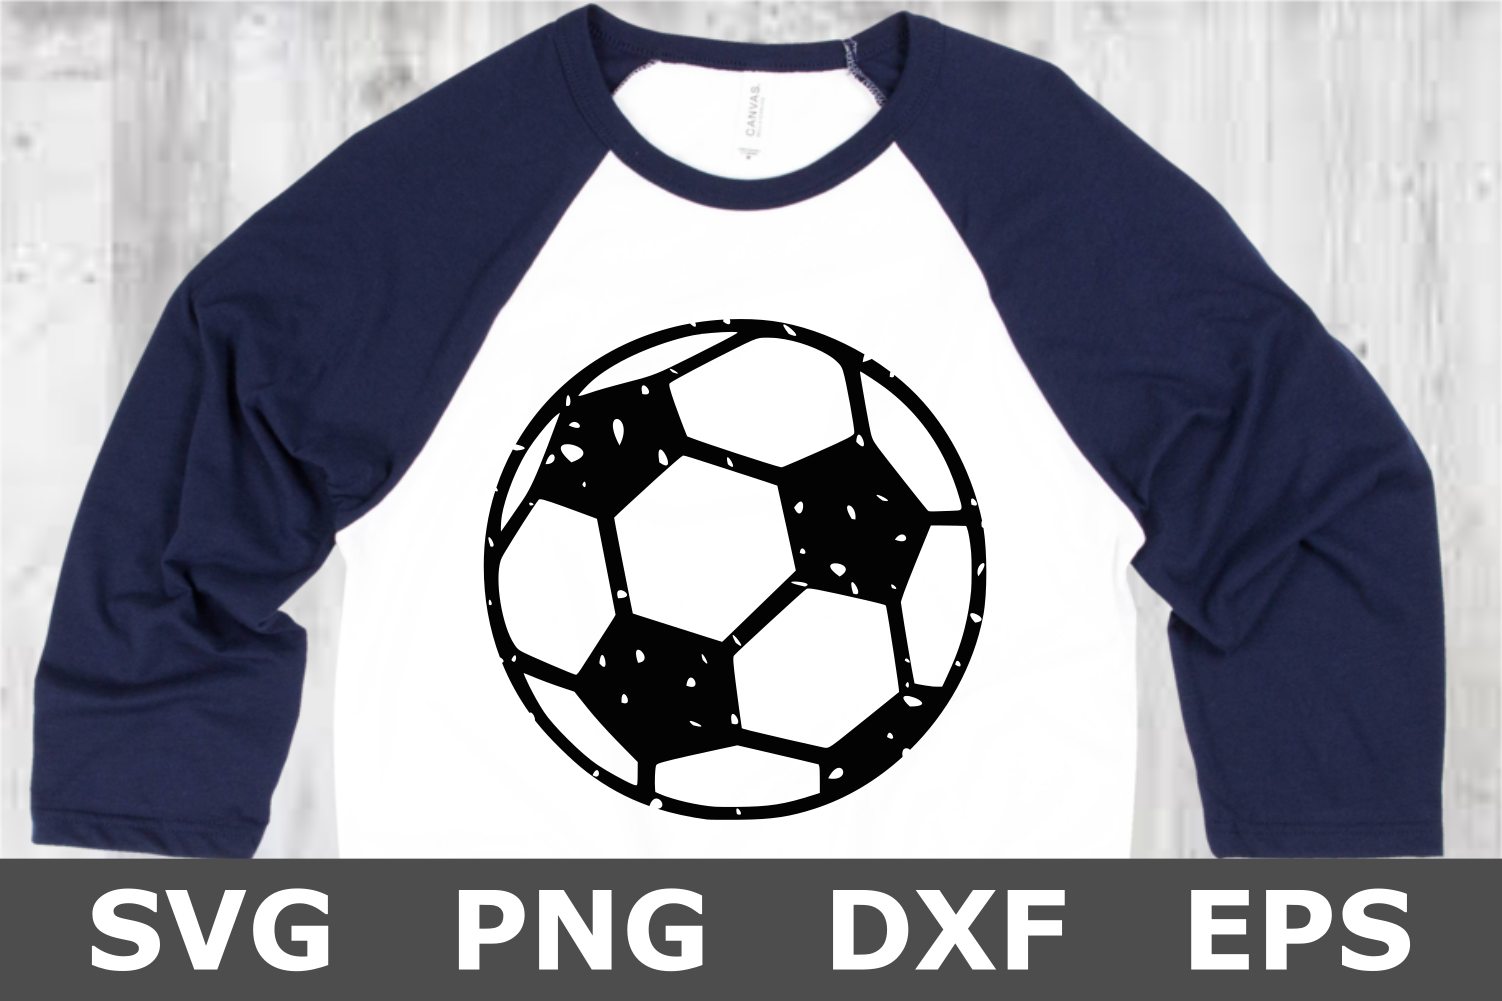 Grunge Soccer Ball - A Sports SVG Cut File example image 2